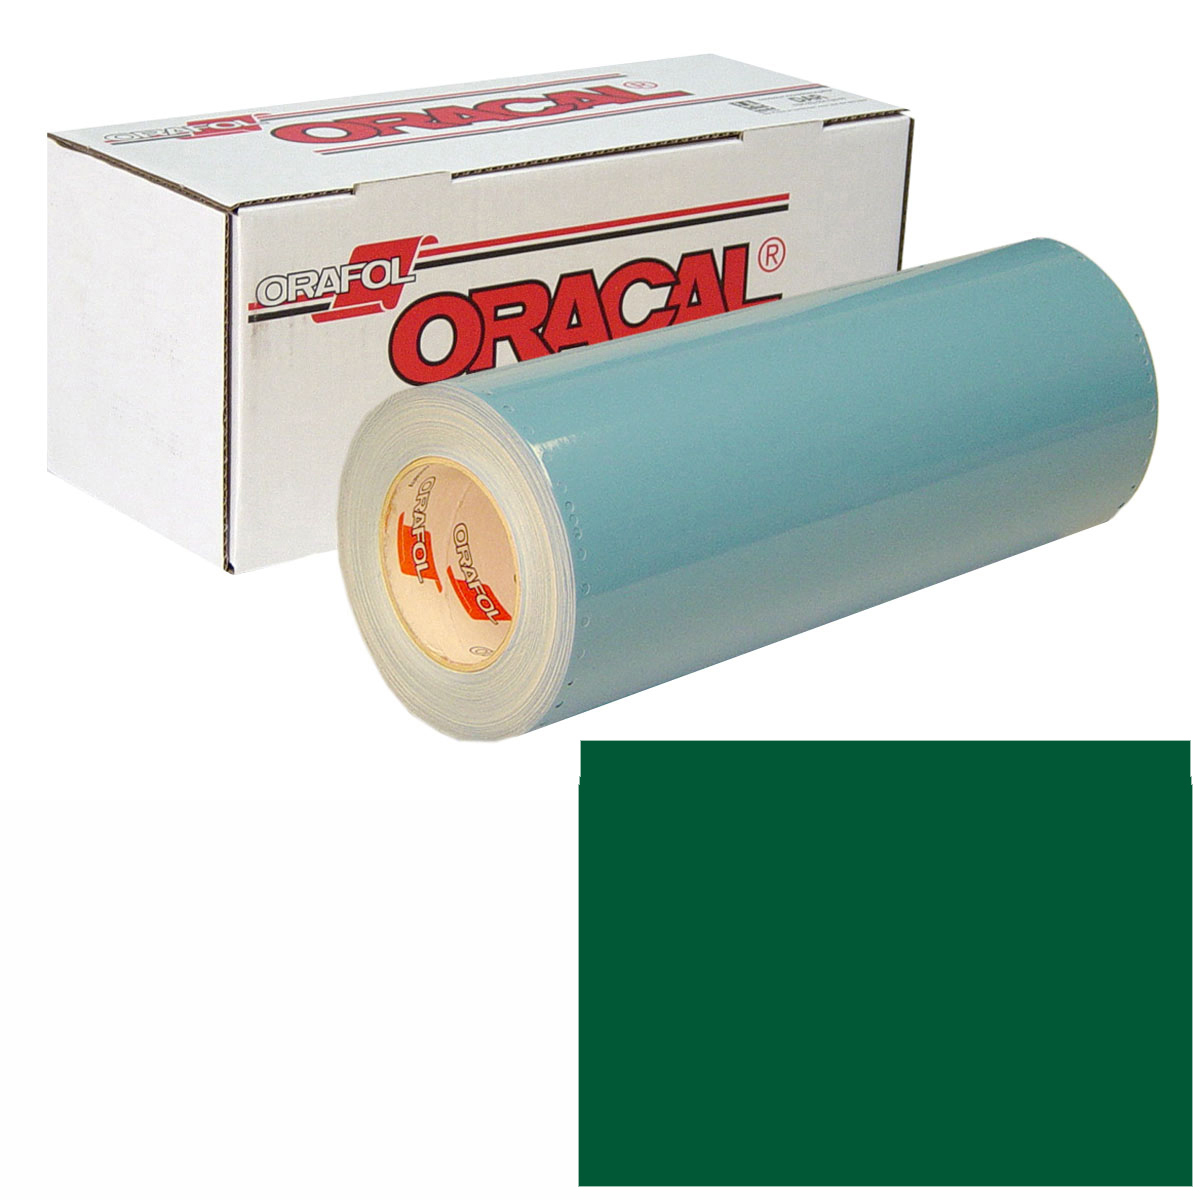 ORACAL 751 Unp 48in X 10yd 060 Dark Green